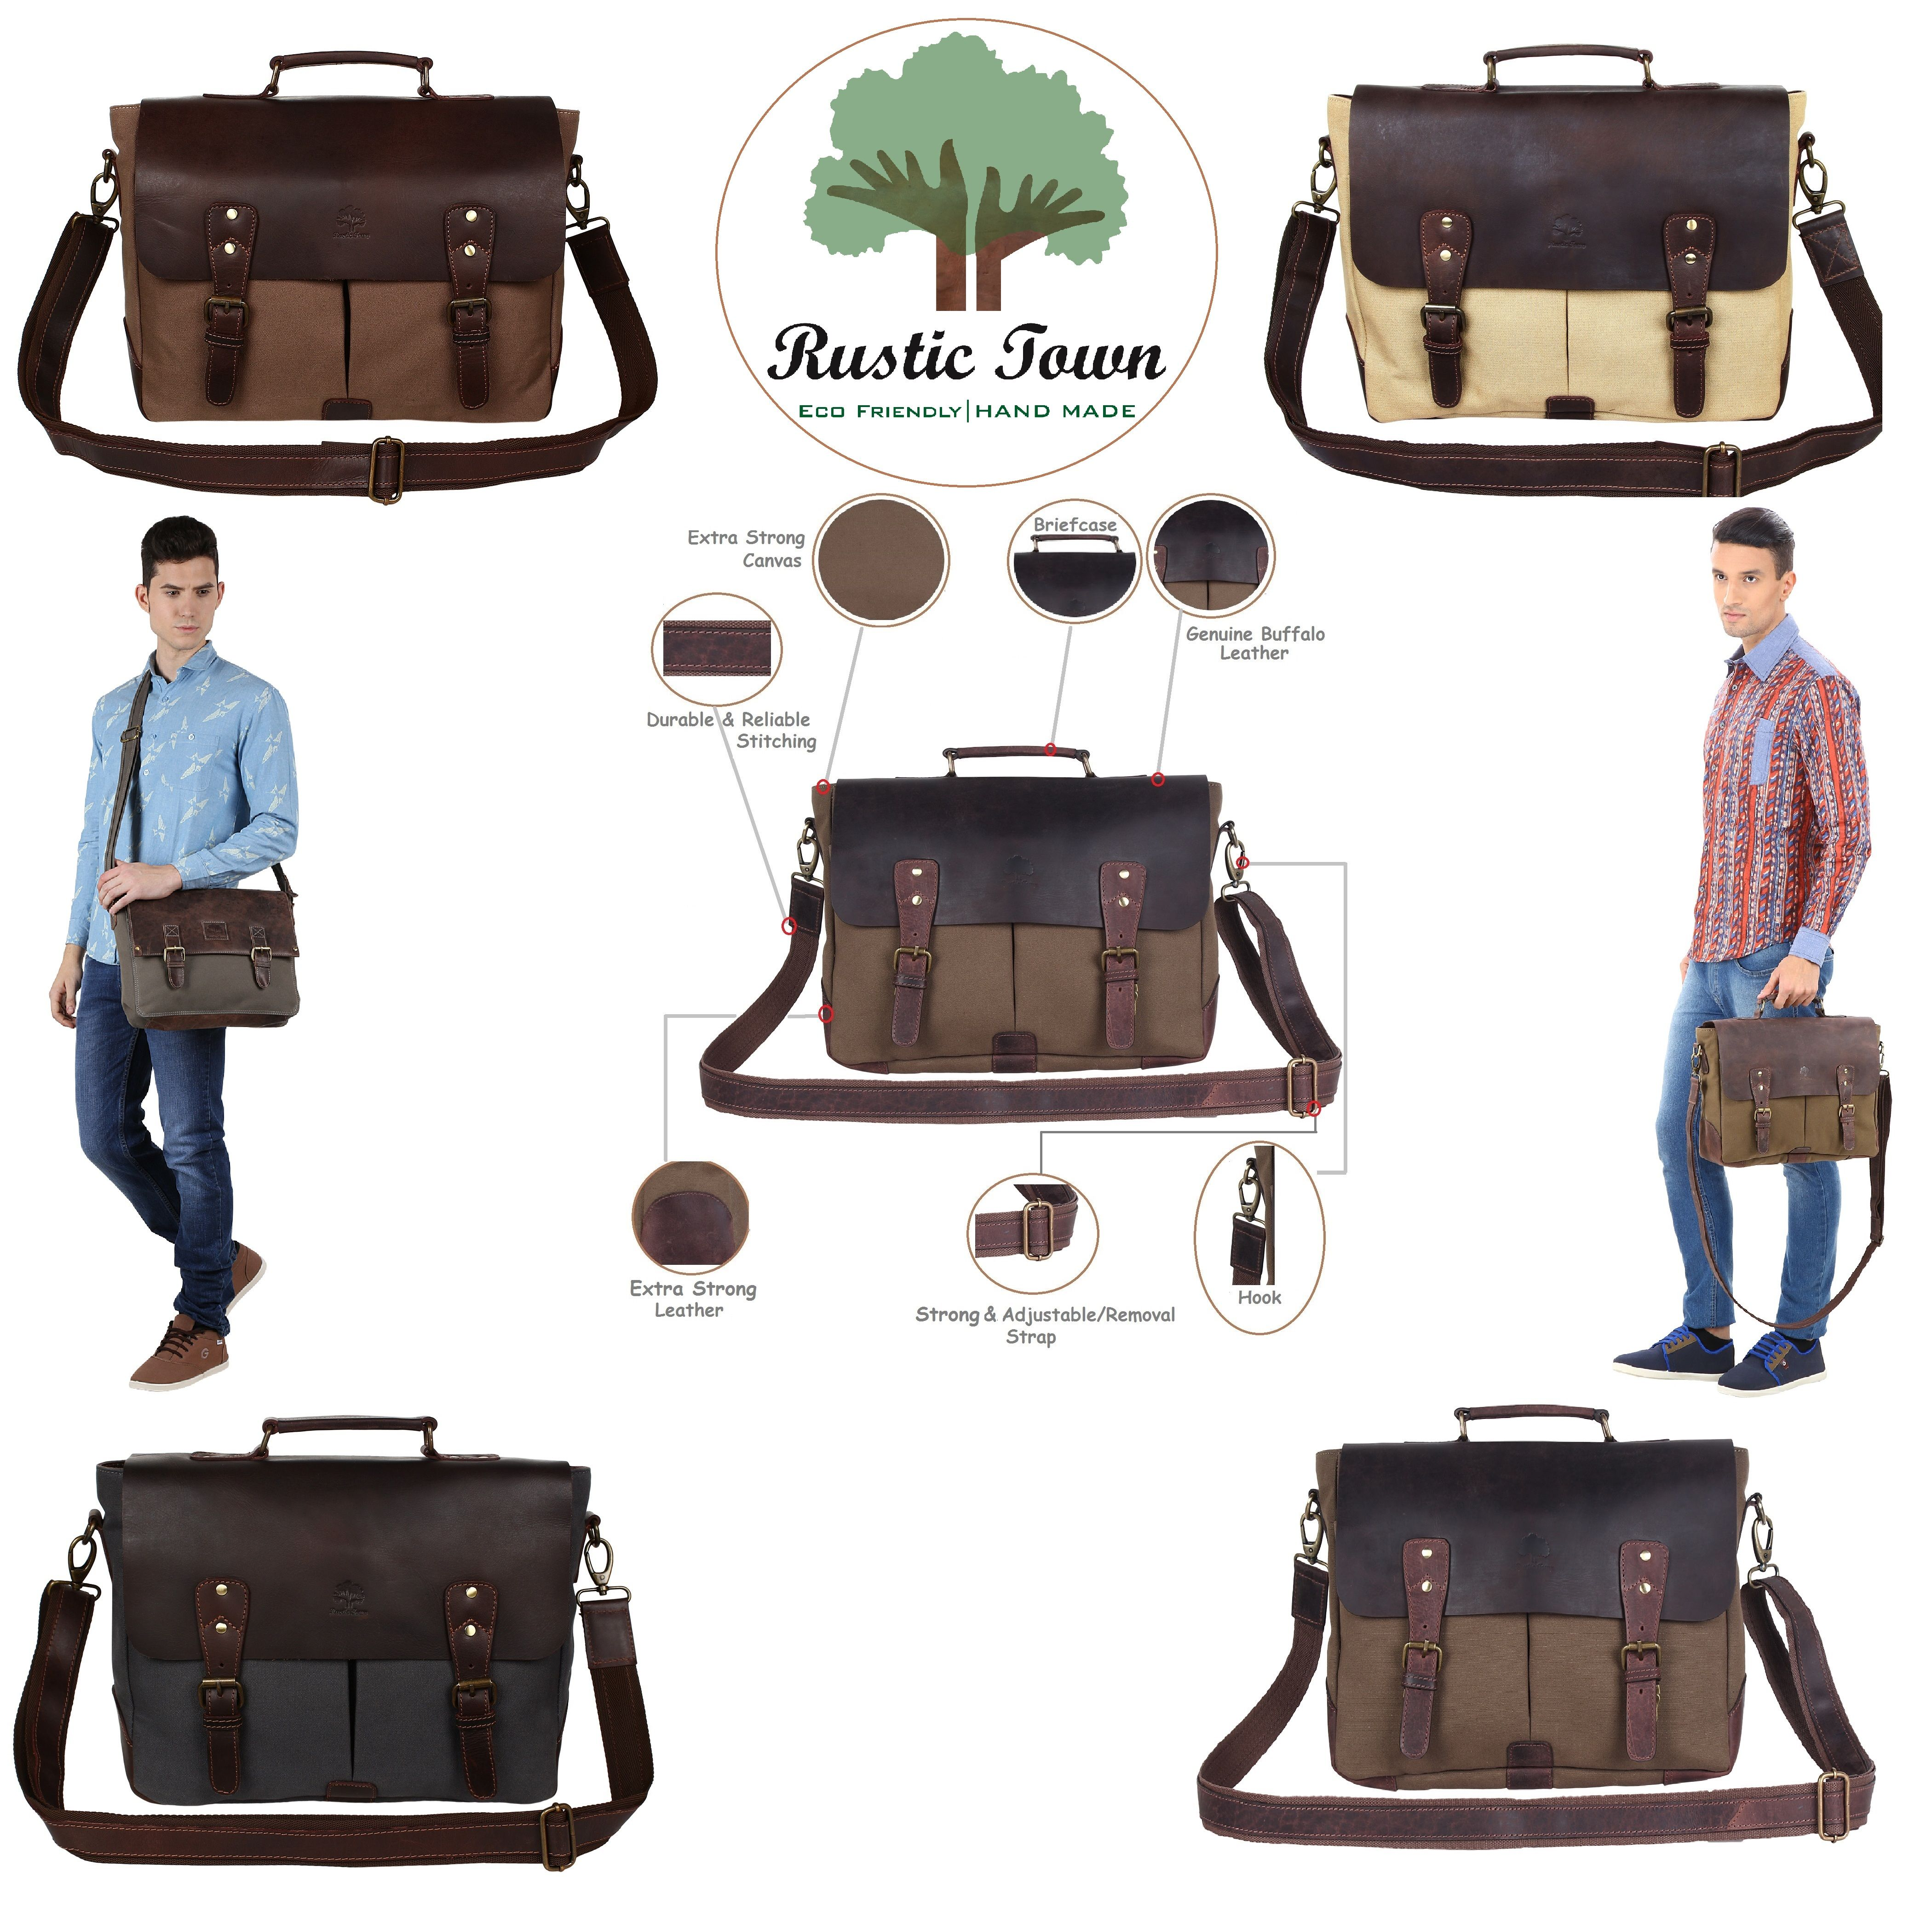 36b7ff7a0 Rustic Town Handmade Leather Canvas Vintage Crossbody Messenger Bag Gift  Men Women Travel Work ~ Carry Laptop Computer Books ~ Everyday Office  College ...